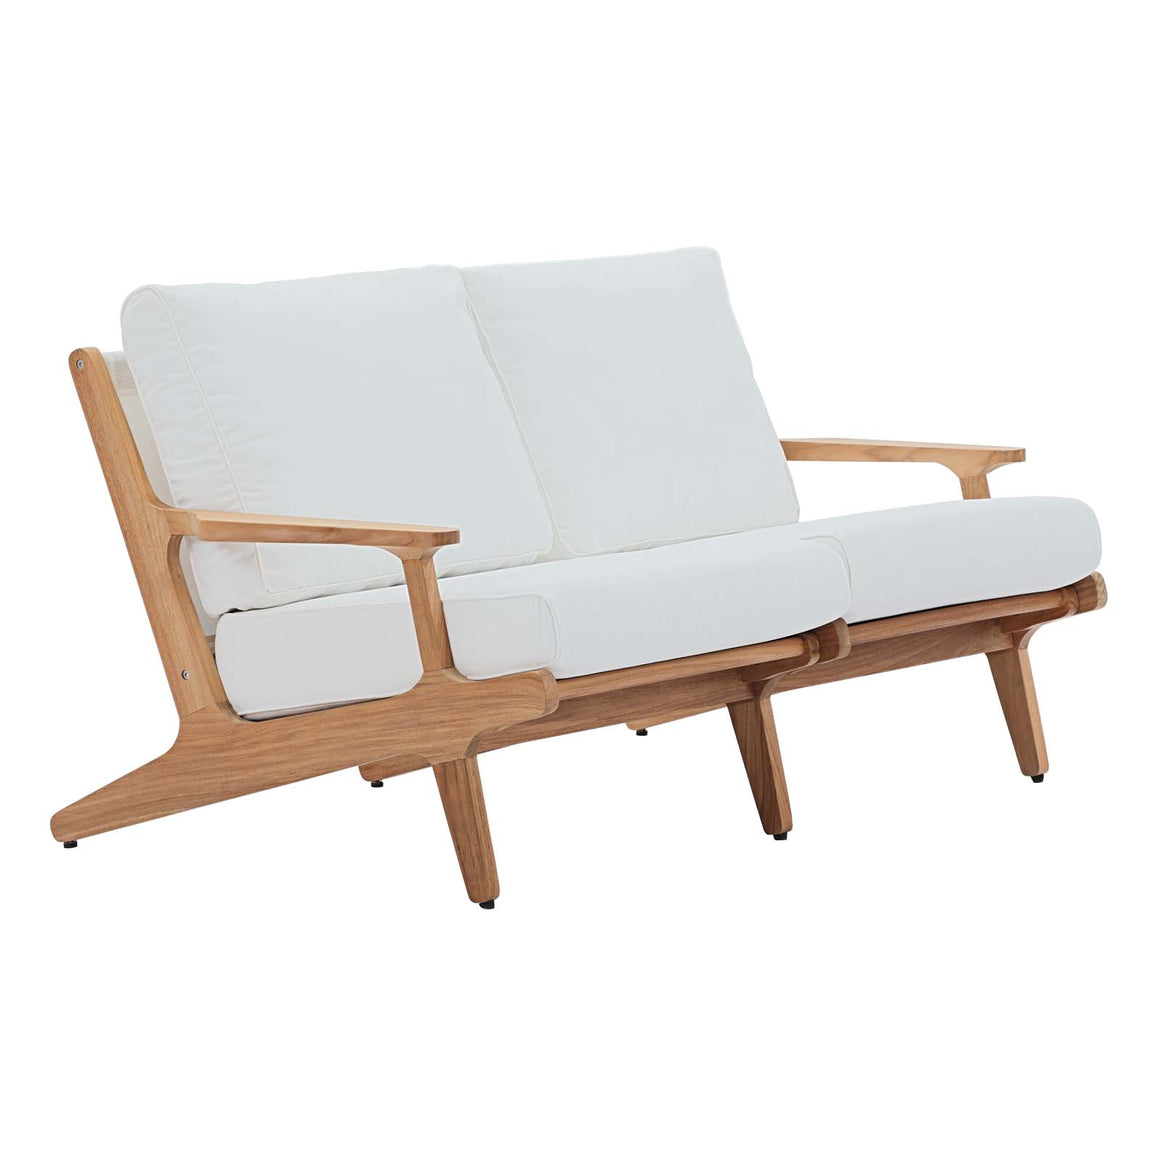 SARATOGA OUTDOOR PATIO TEAK LOVESEAT IN NATURAL WHITE